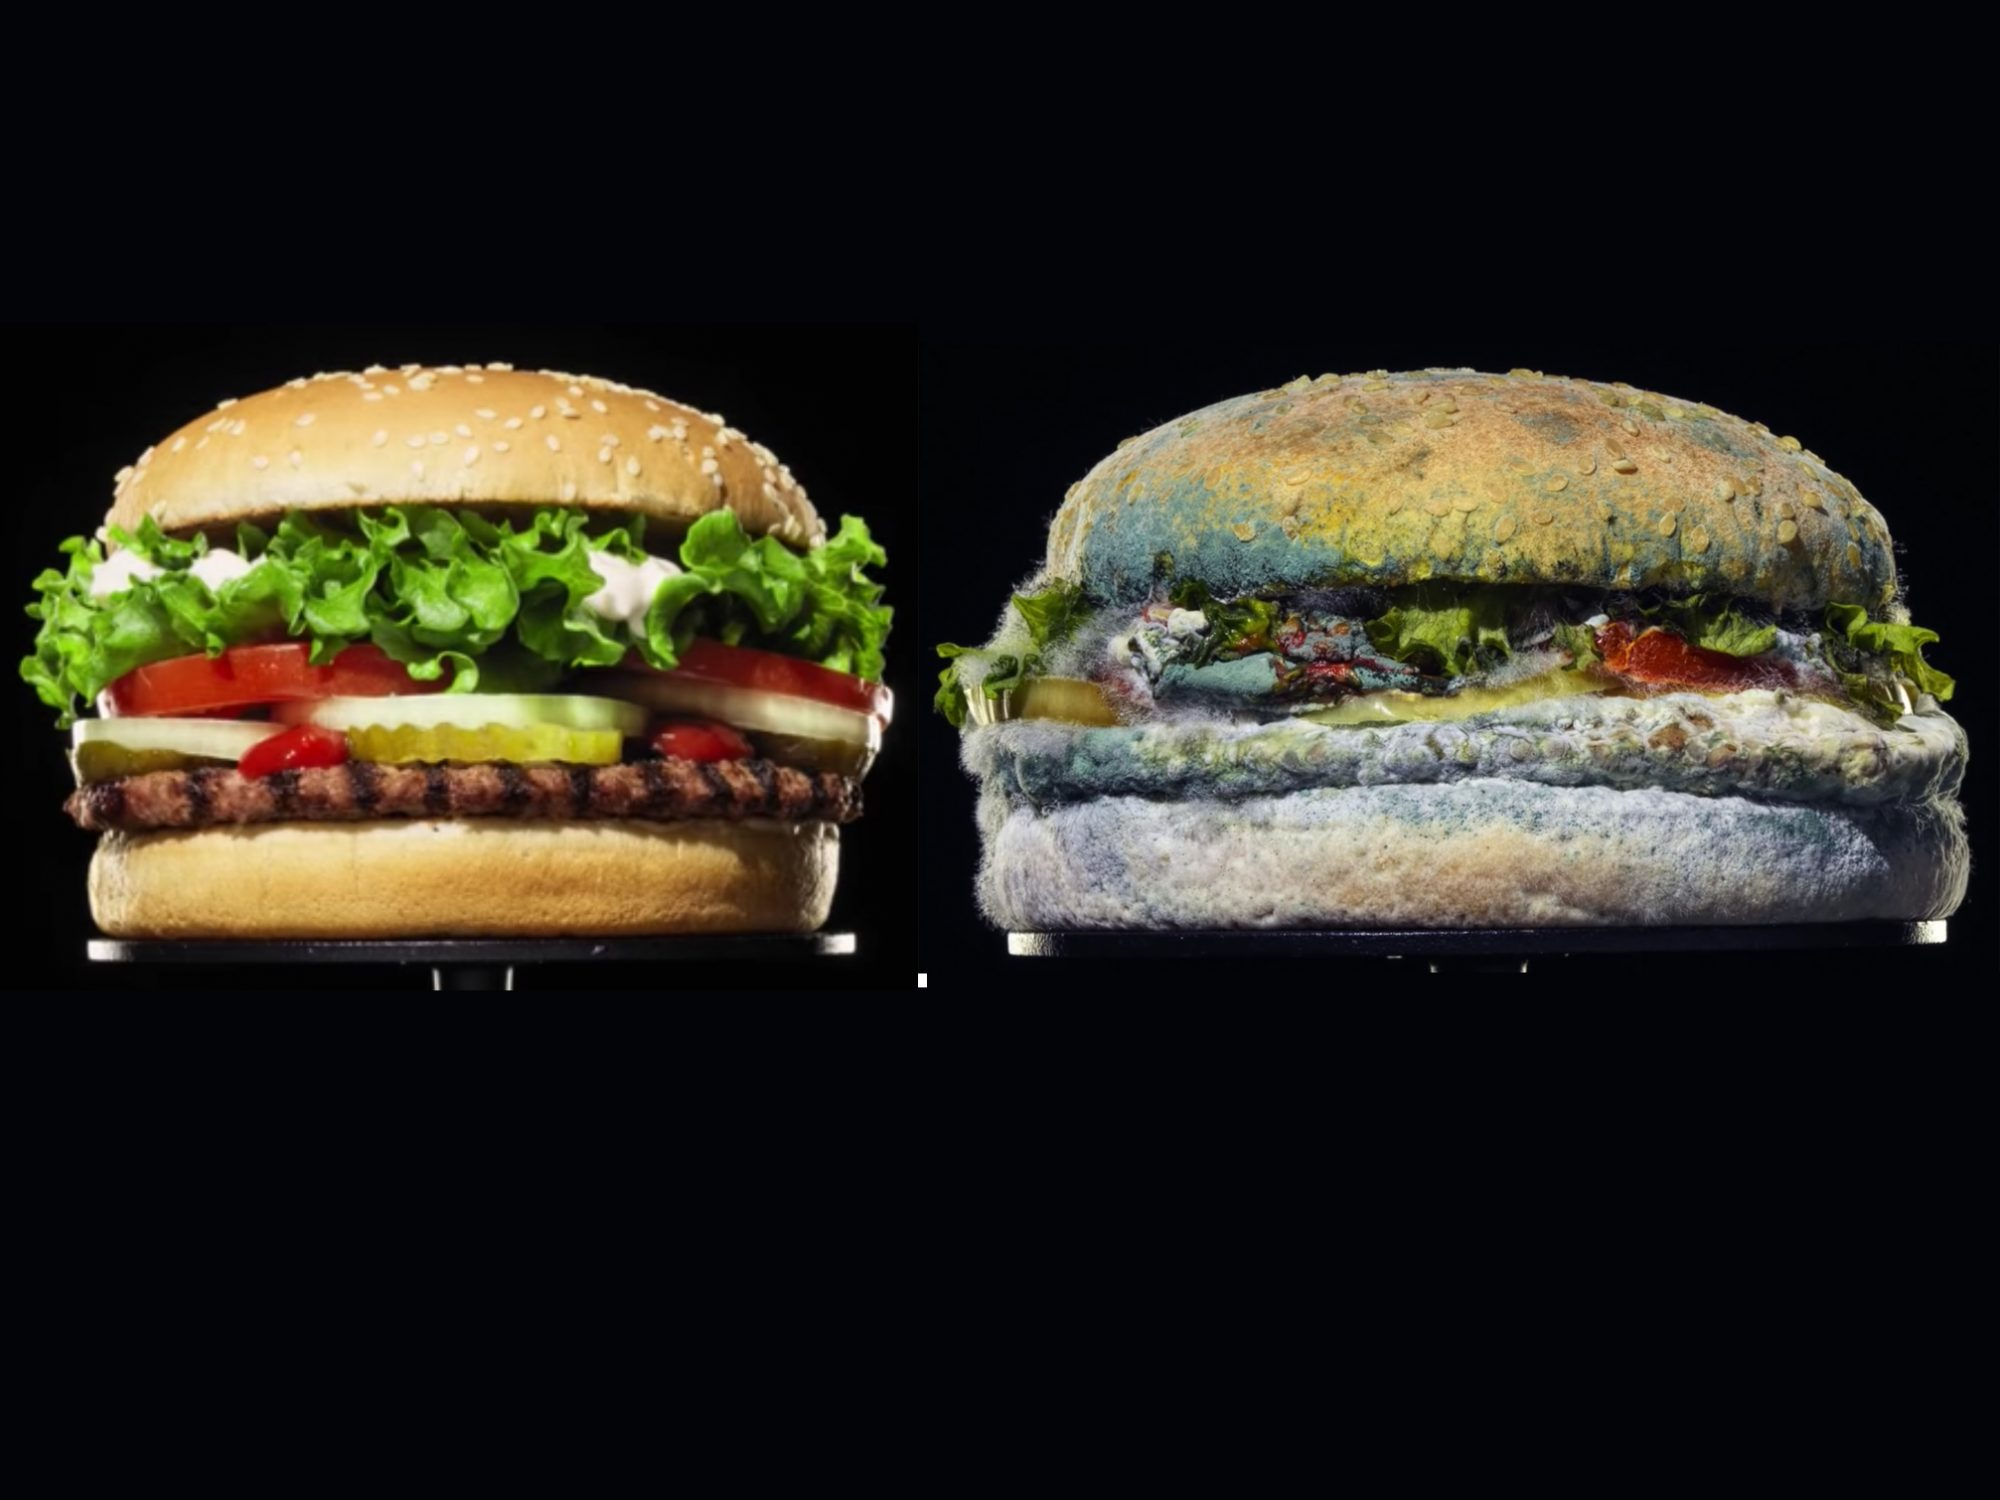 Burger King's New Ad Campaign Features a Moldy Whopper, and We Can't Look Away